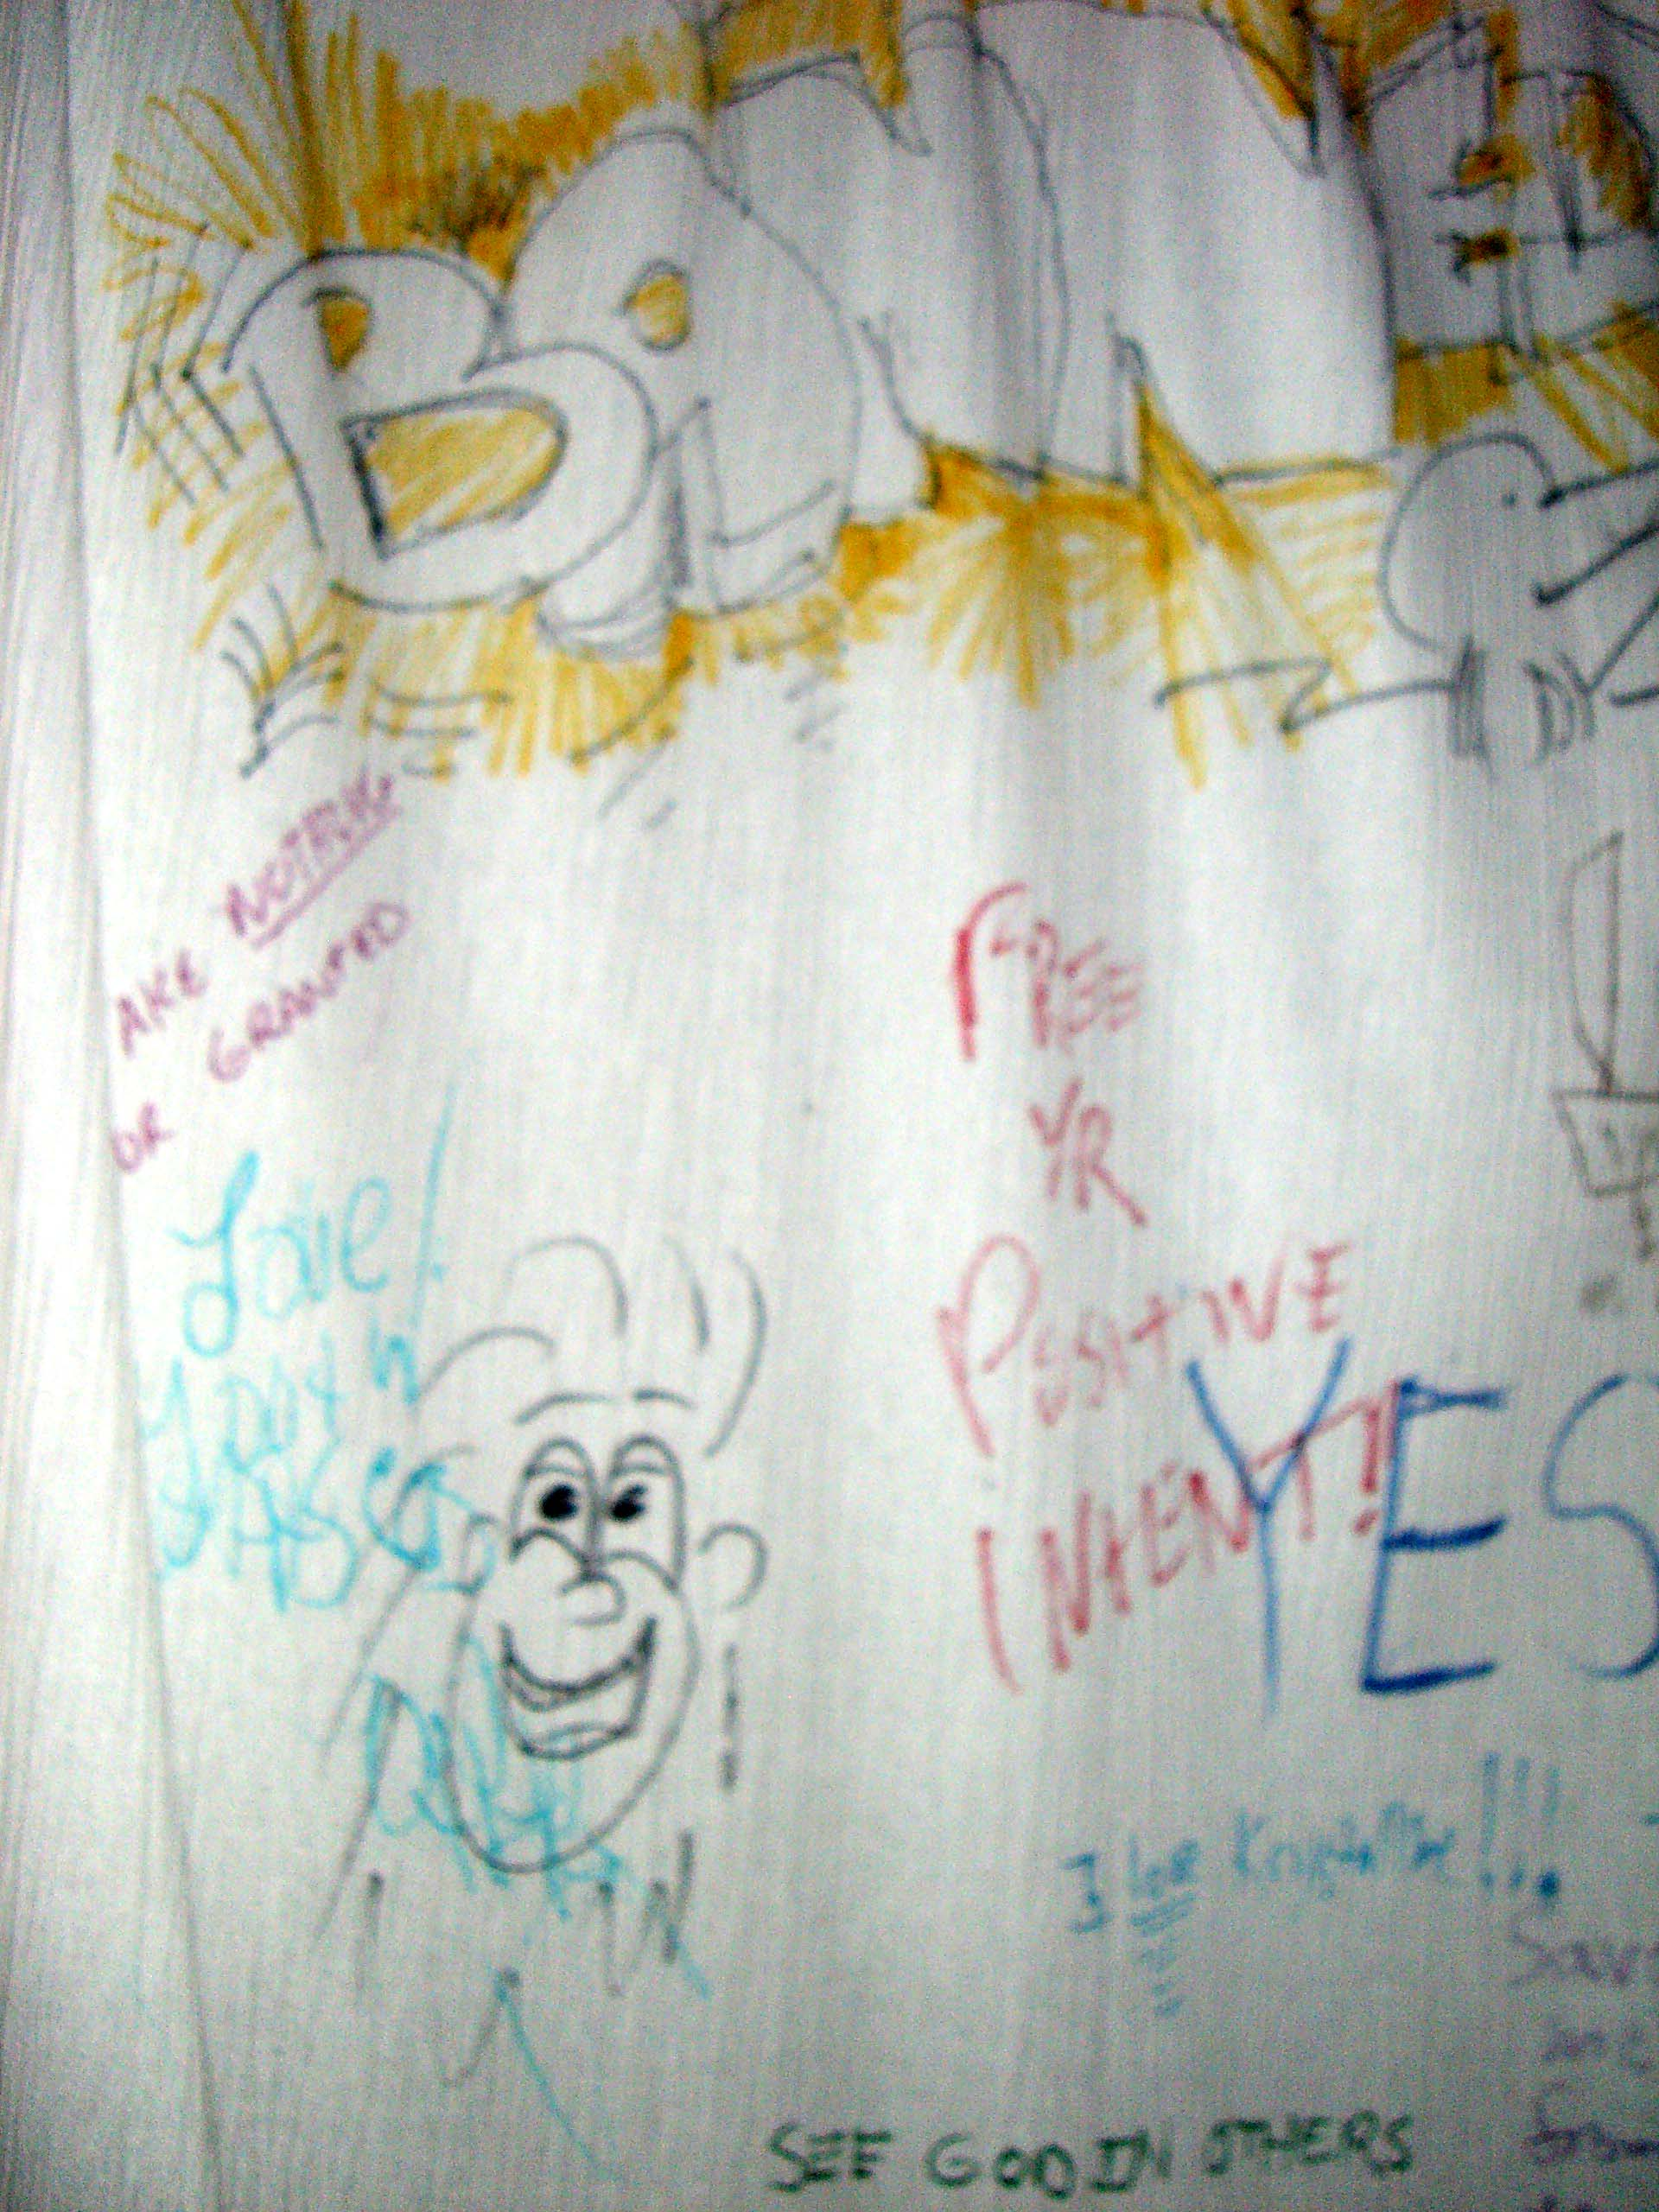 The sheets inside the booth where people could write whatever they wanted